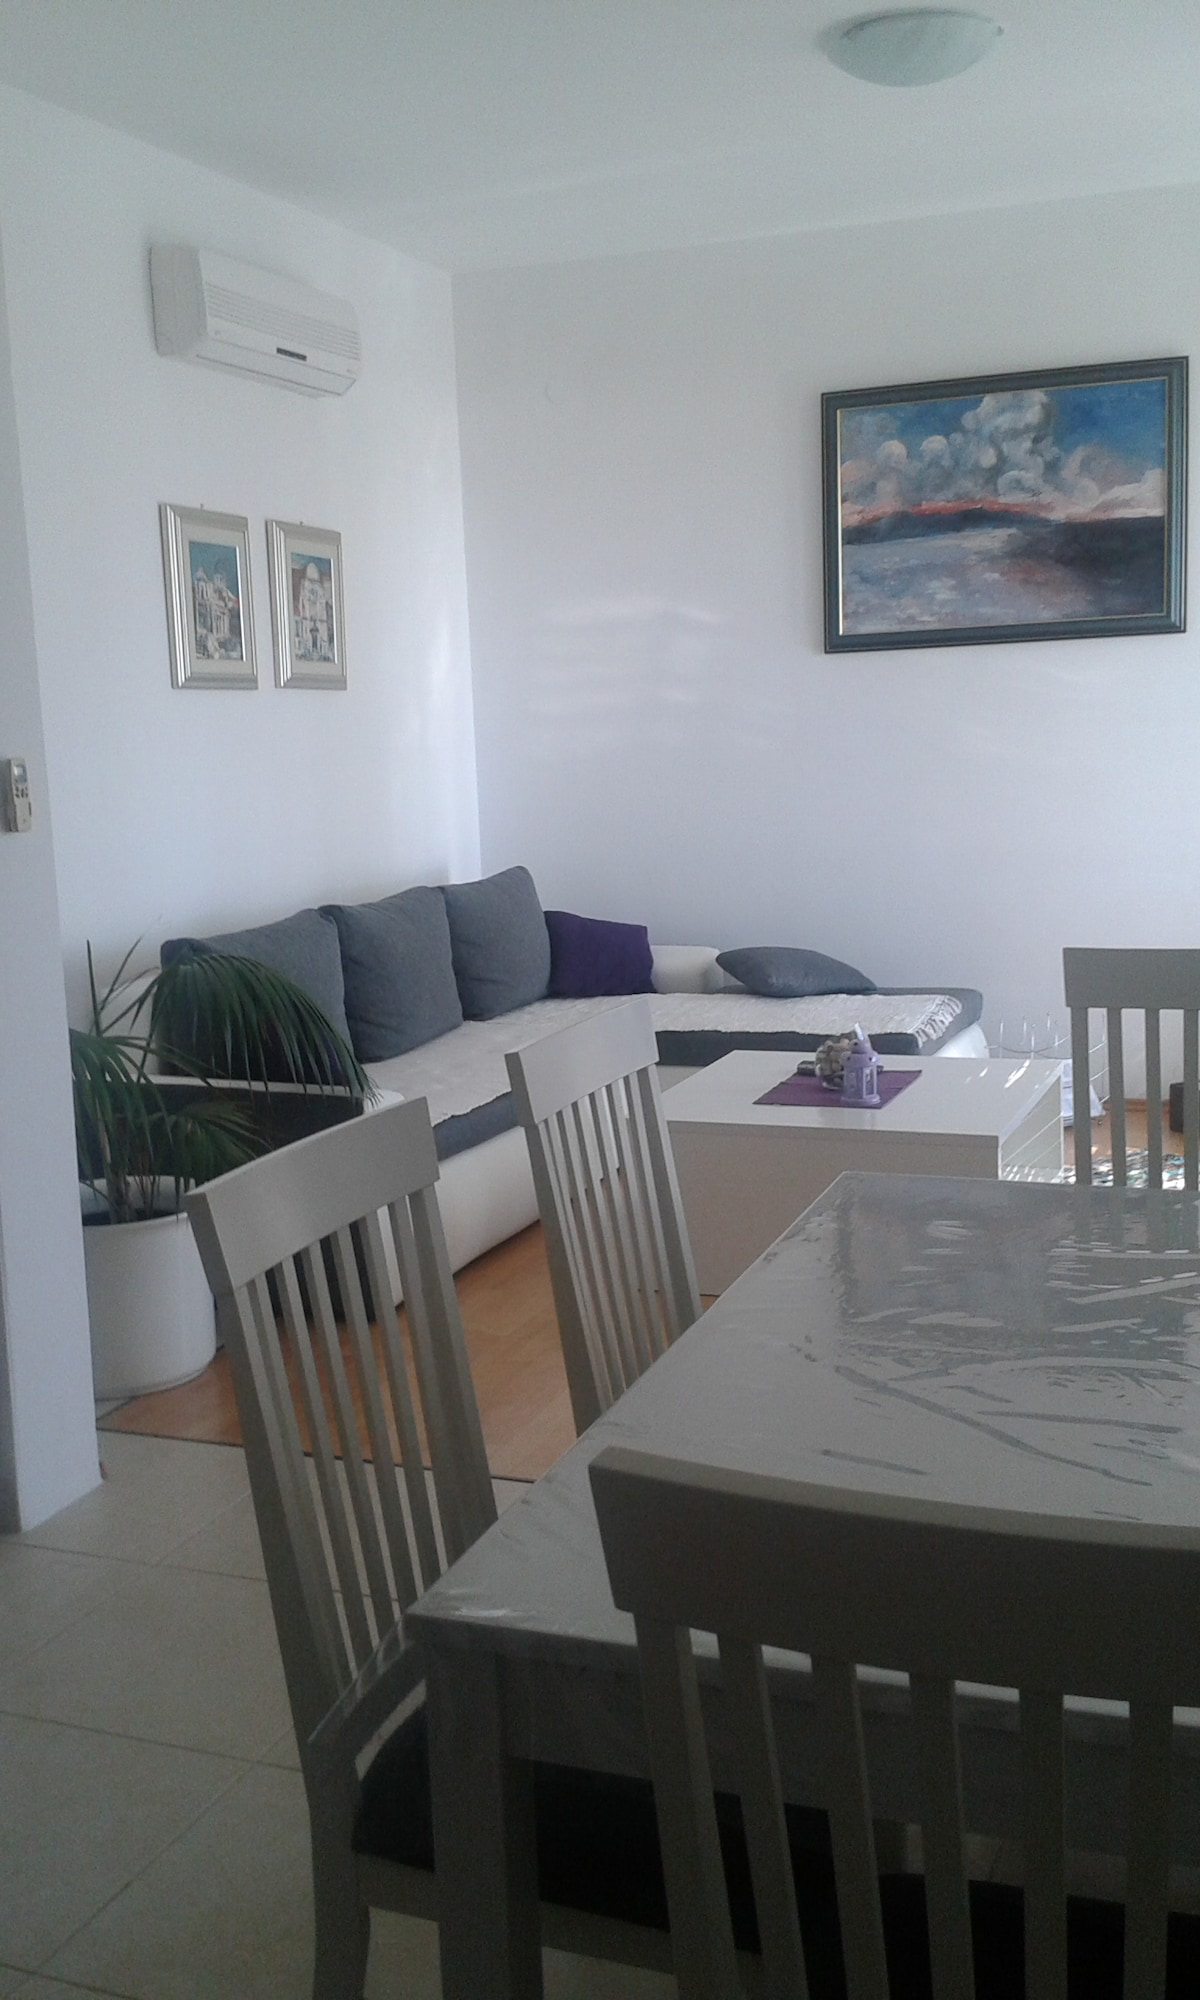 dining area with the kitchen